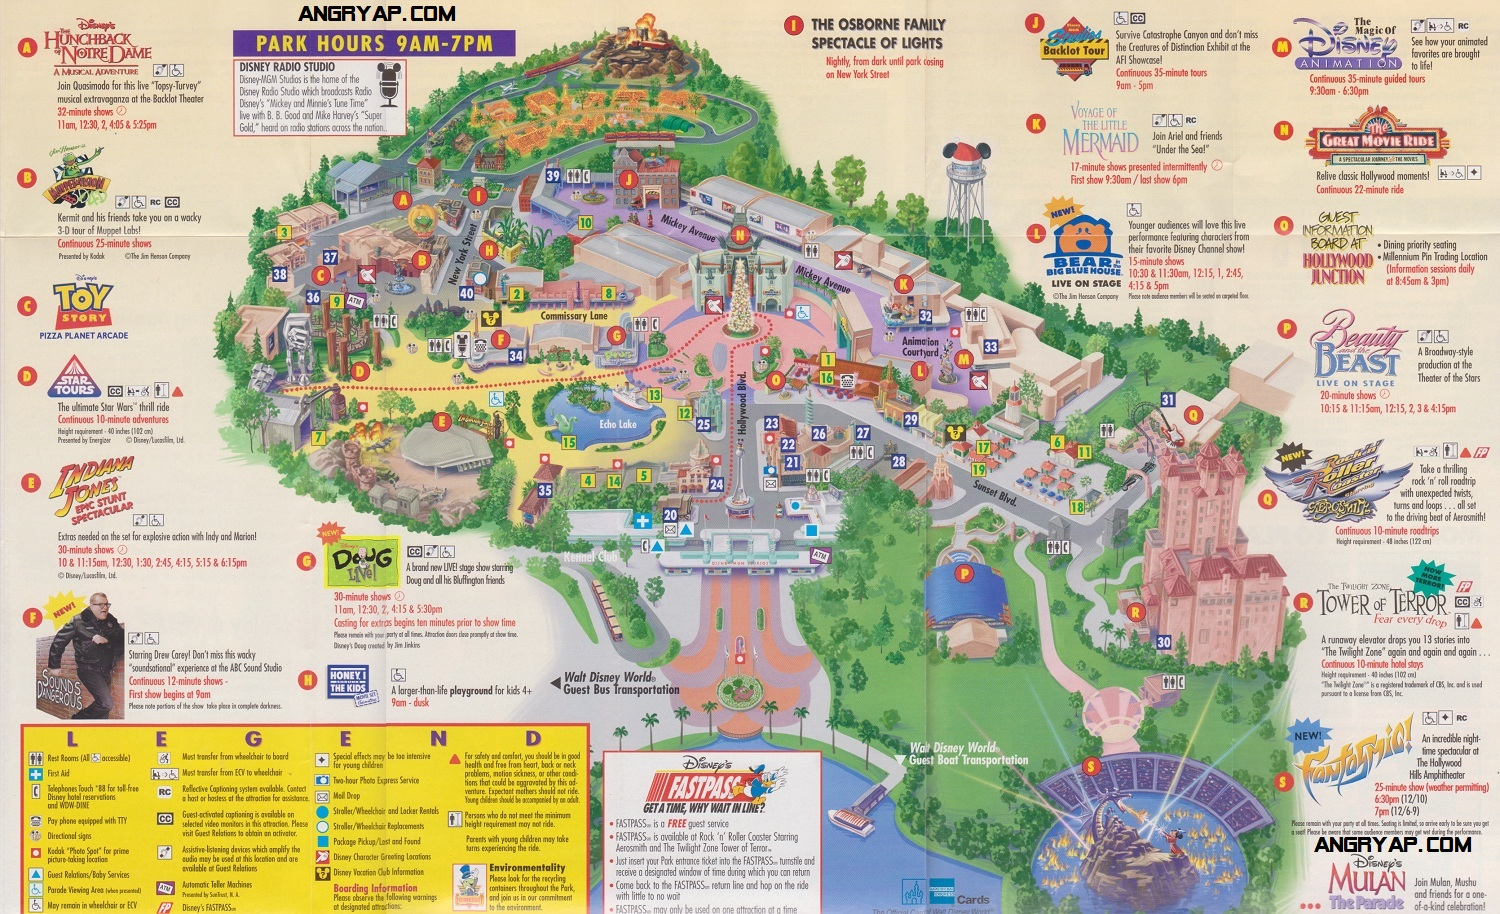 Hollywood Studios Map 2016 Pictures to Pin on Pinterest PinsDaddy